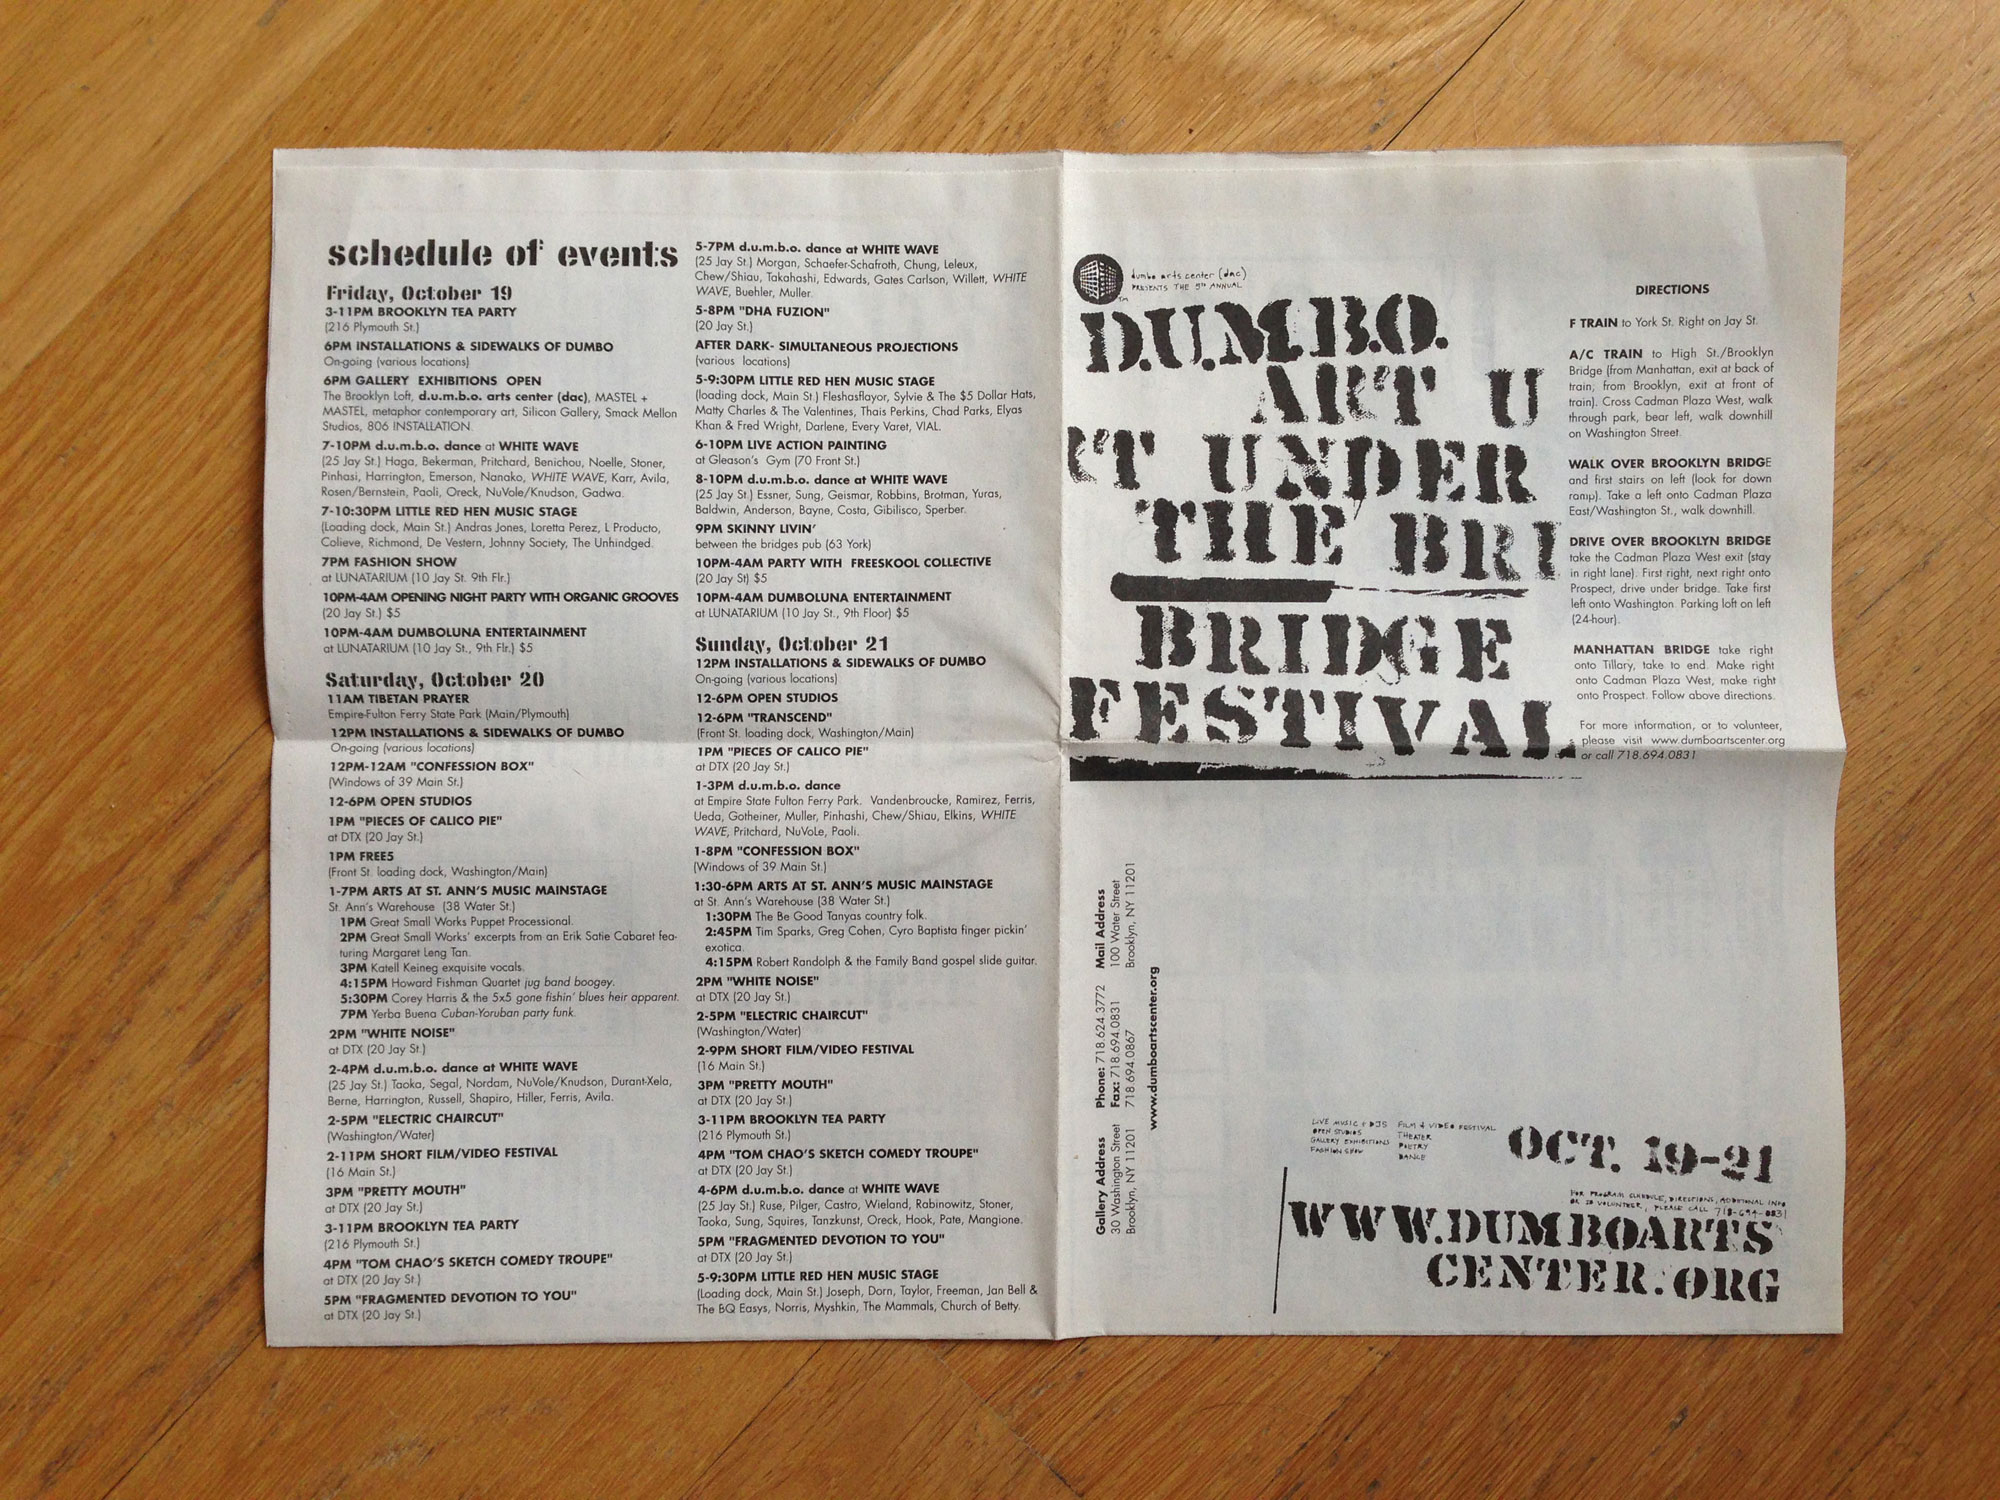 dumbo arts center: festival brochure/mailer 2001